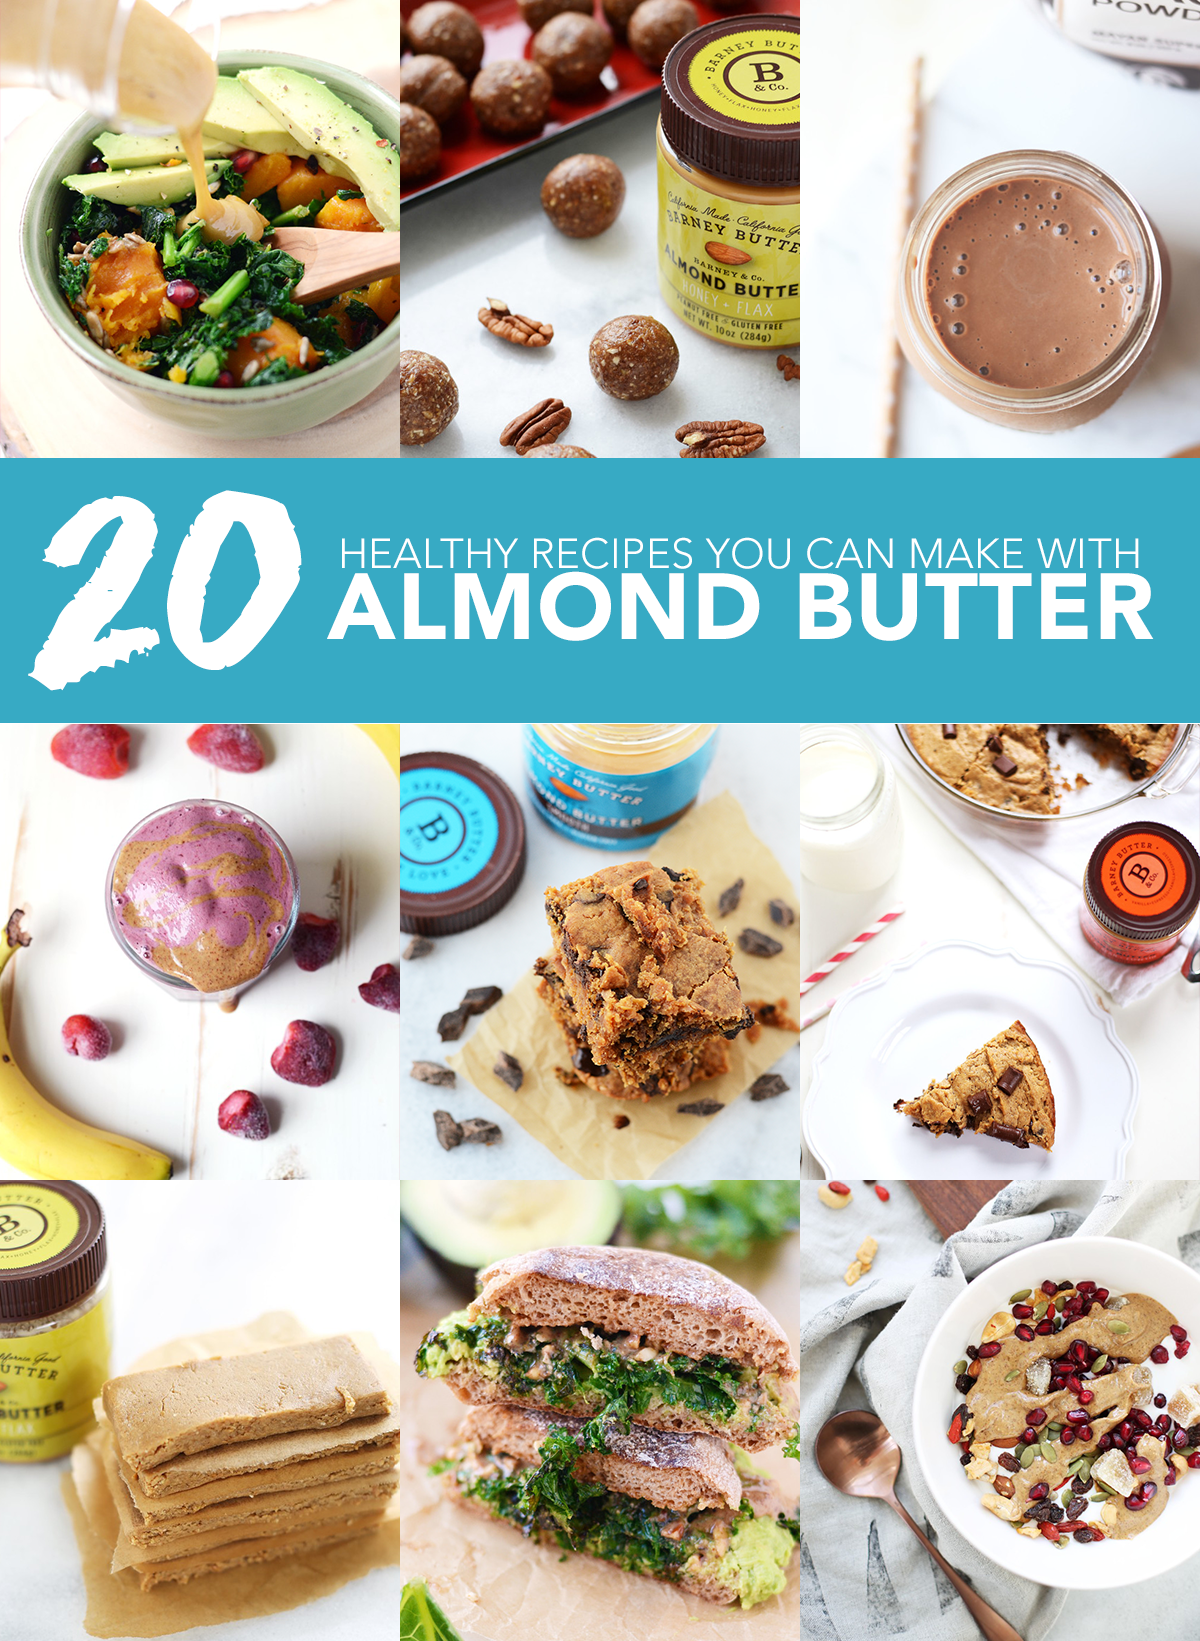 20 Healthy Recipes You Can Make with Almond Butter